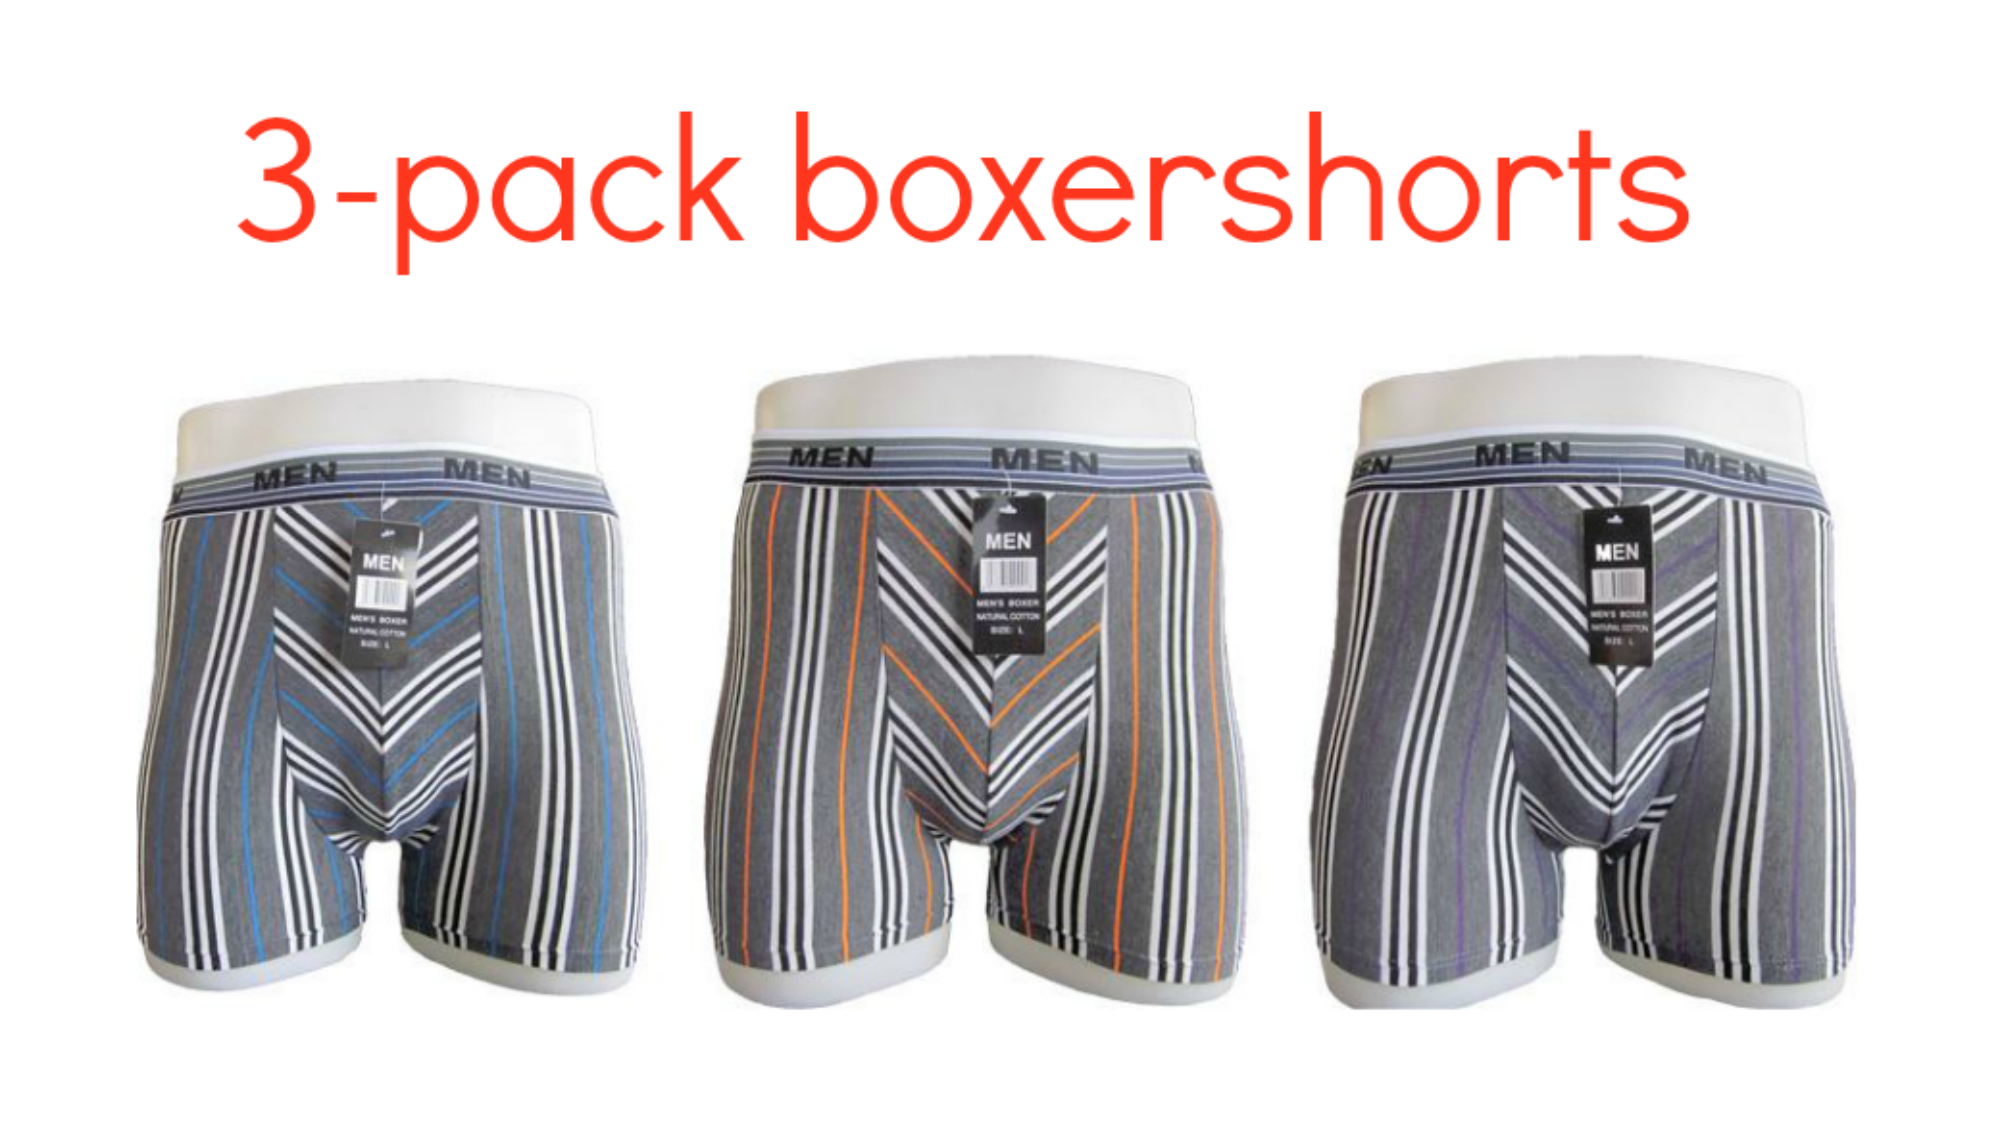 One Day Price - 3x herenboxershorts